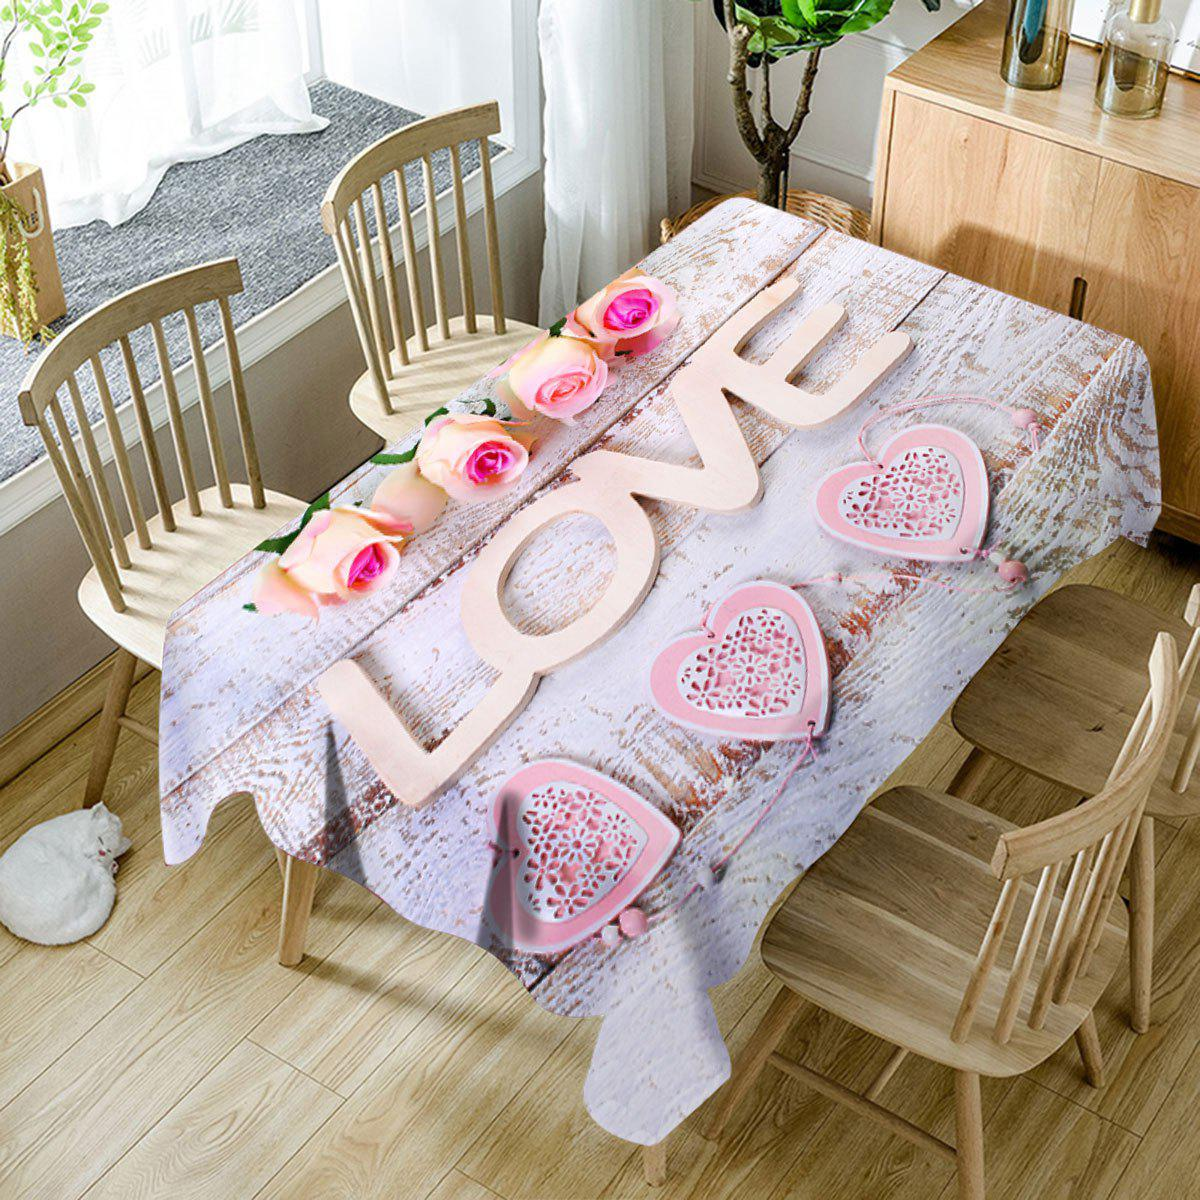 Valentine's Day Roses Love Hearts Printed Waterproof Table Cloth - COLORMIX W60 INCH * L84 INCH